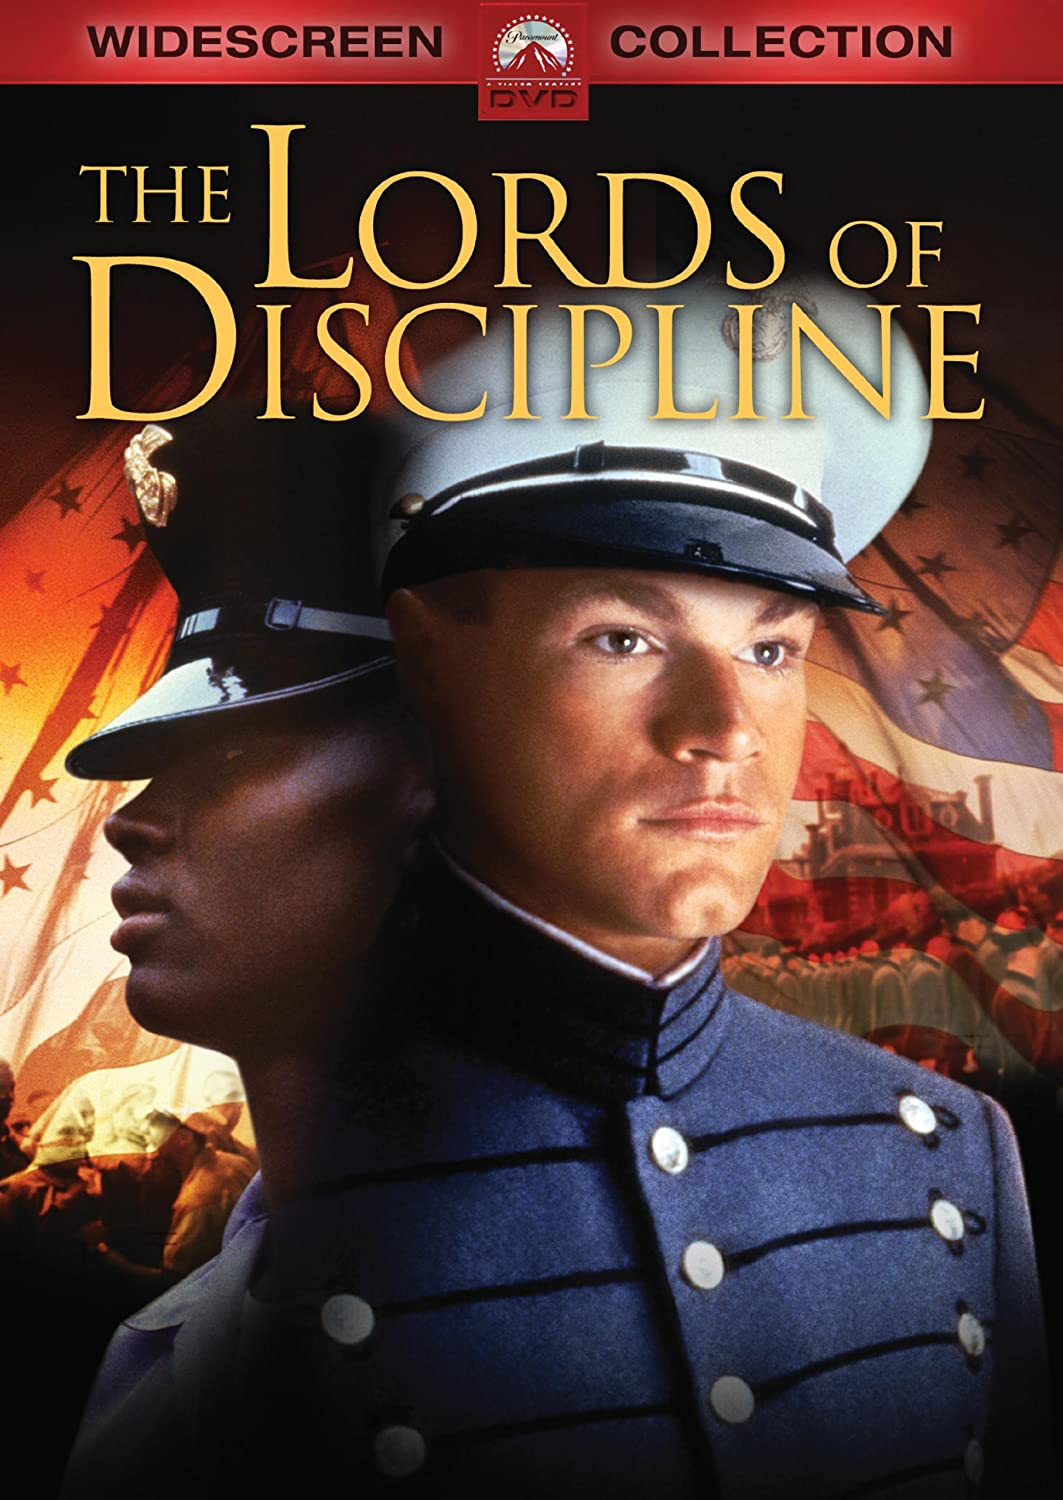 price Lords Of Discipline 1983 The Directly managed store